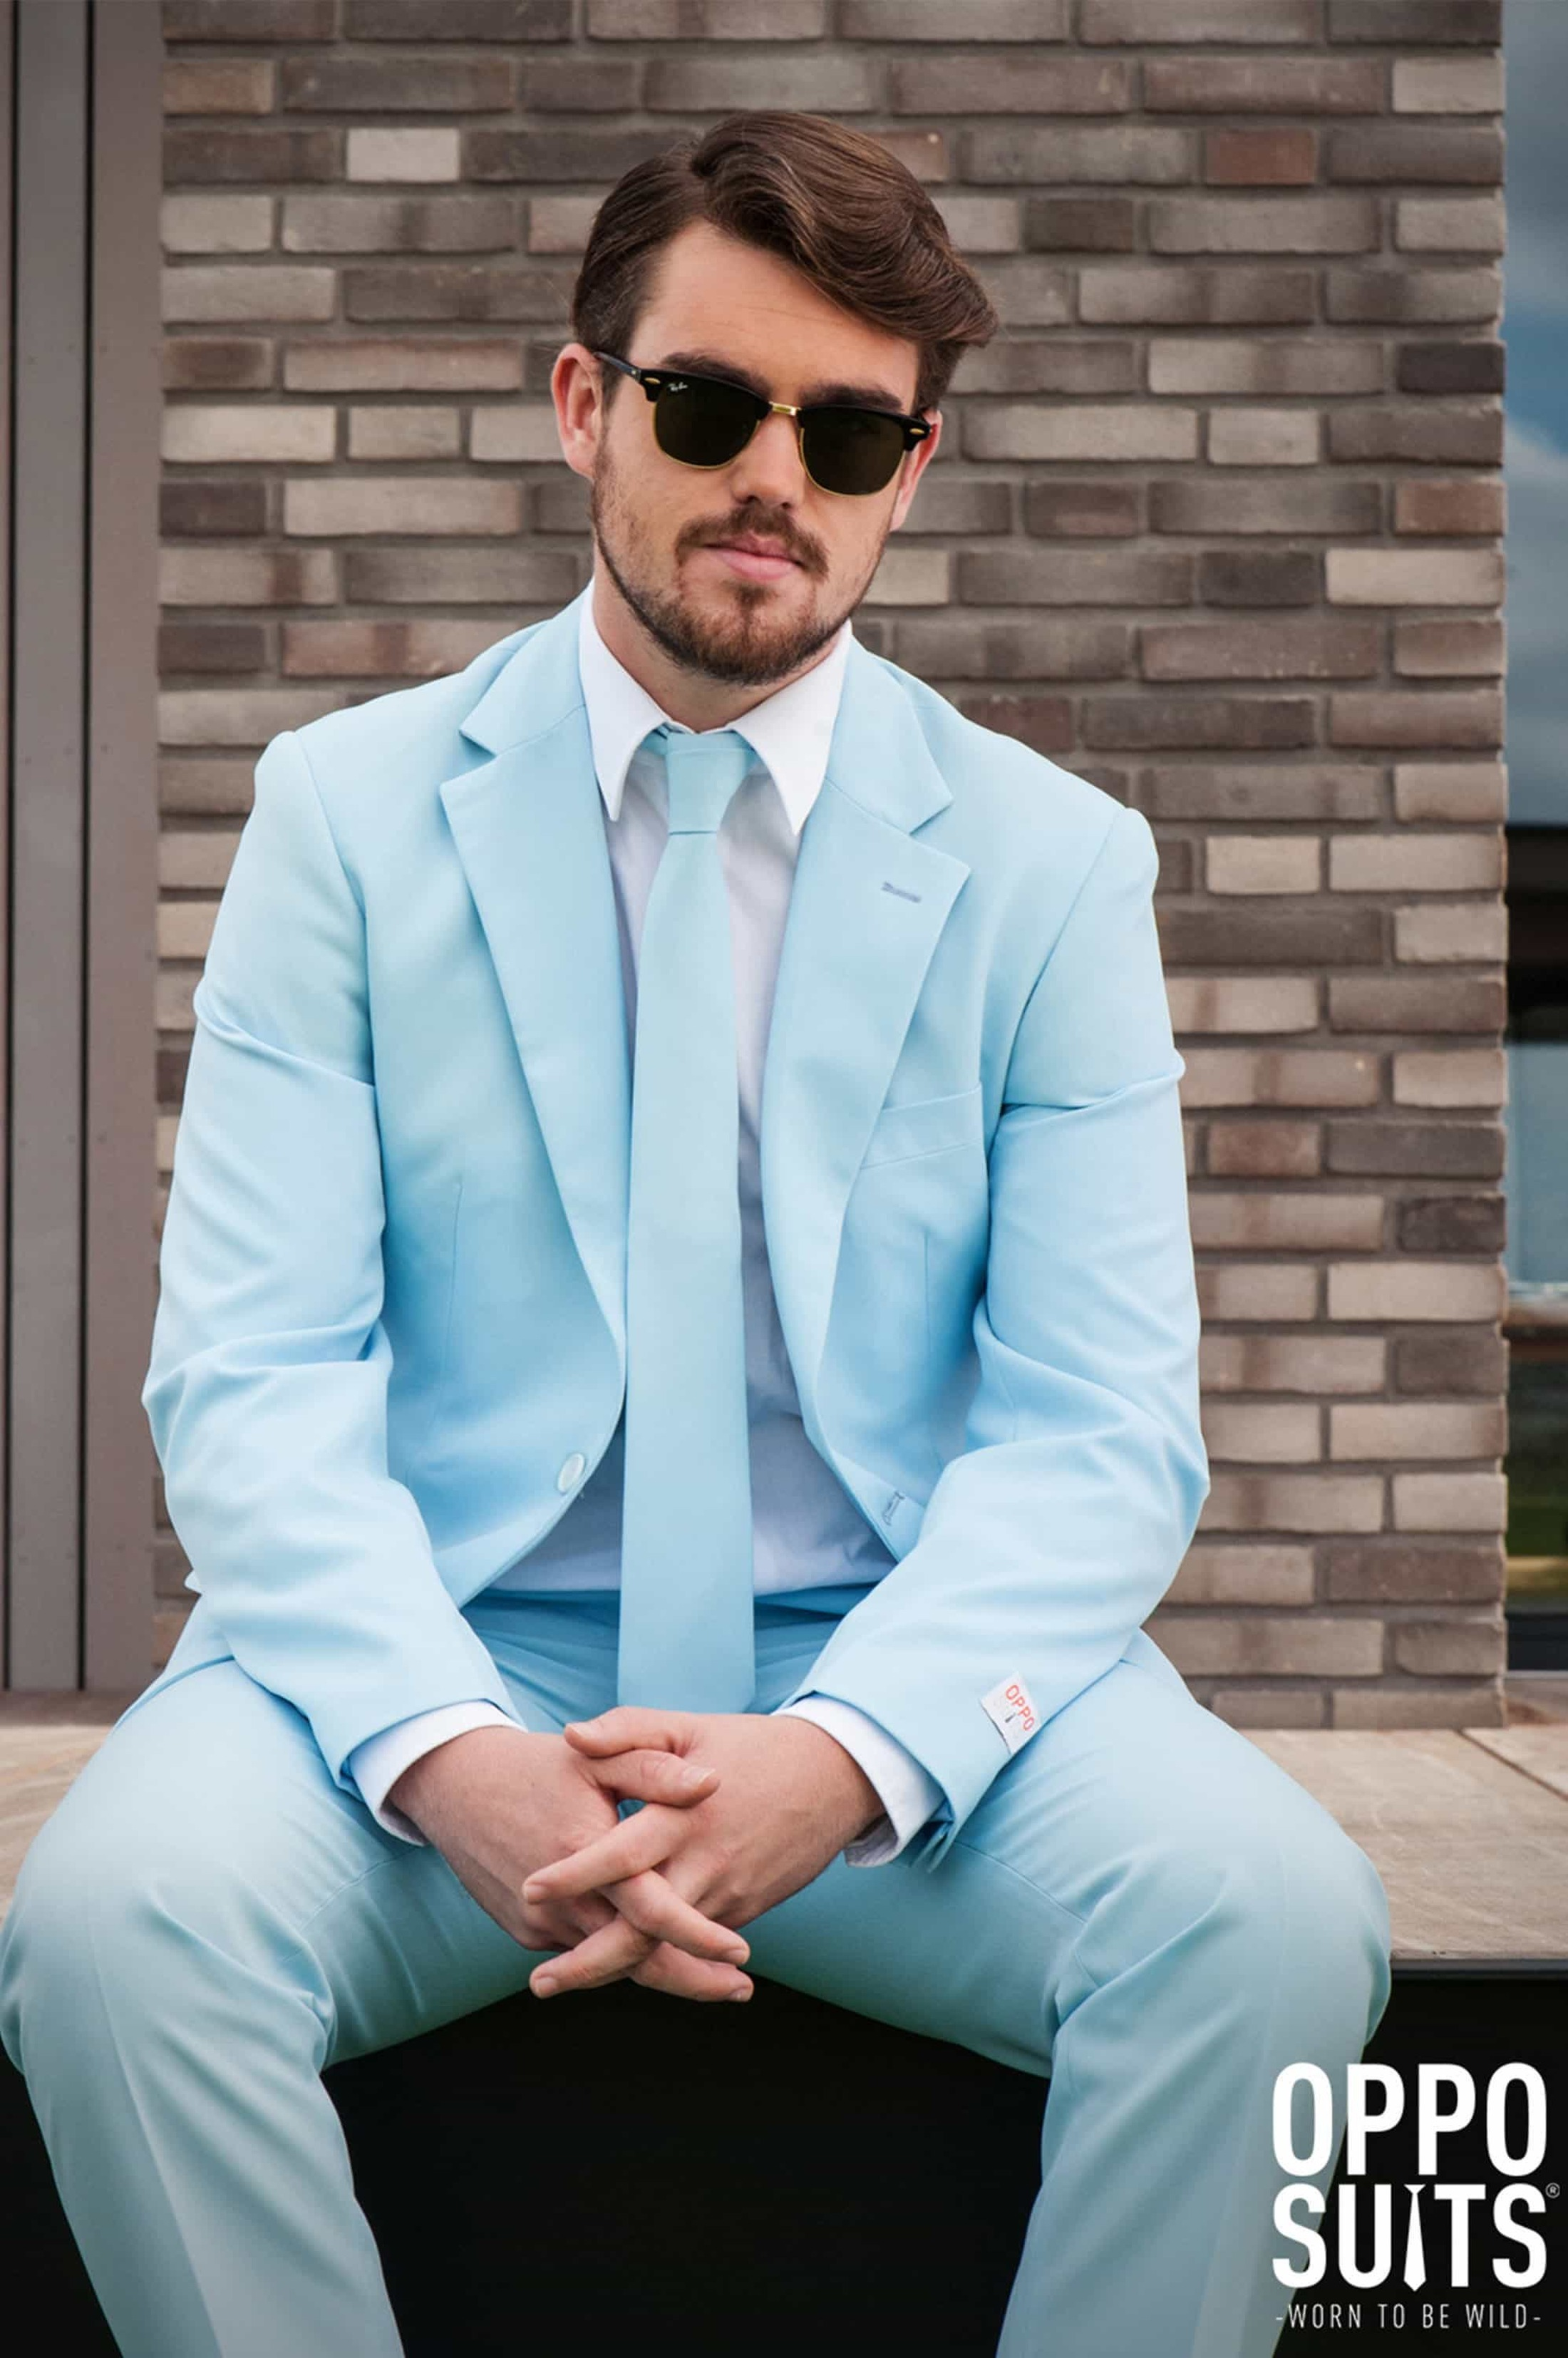 OppoSuits Cool Blue Suit foto 2